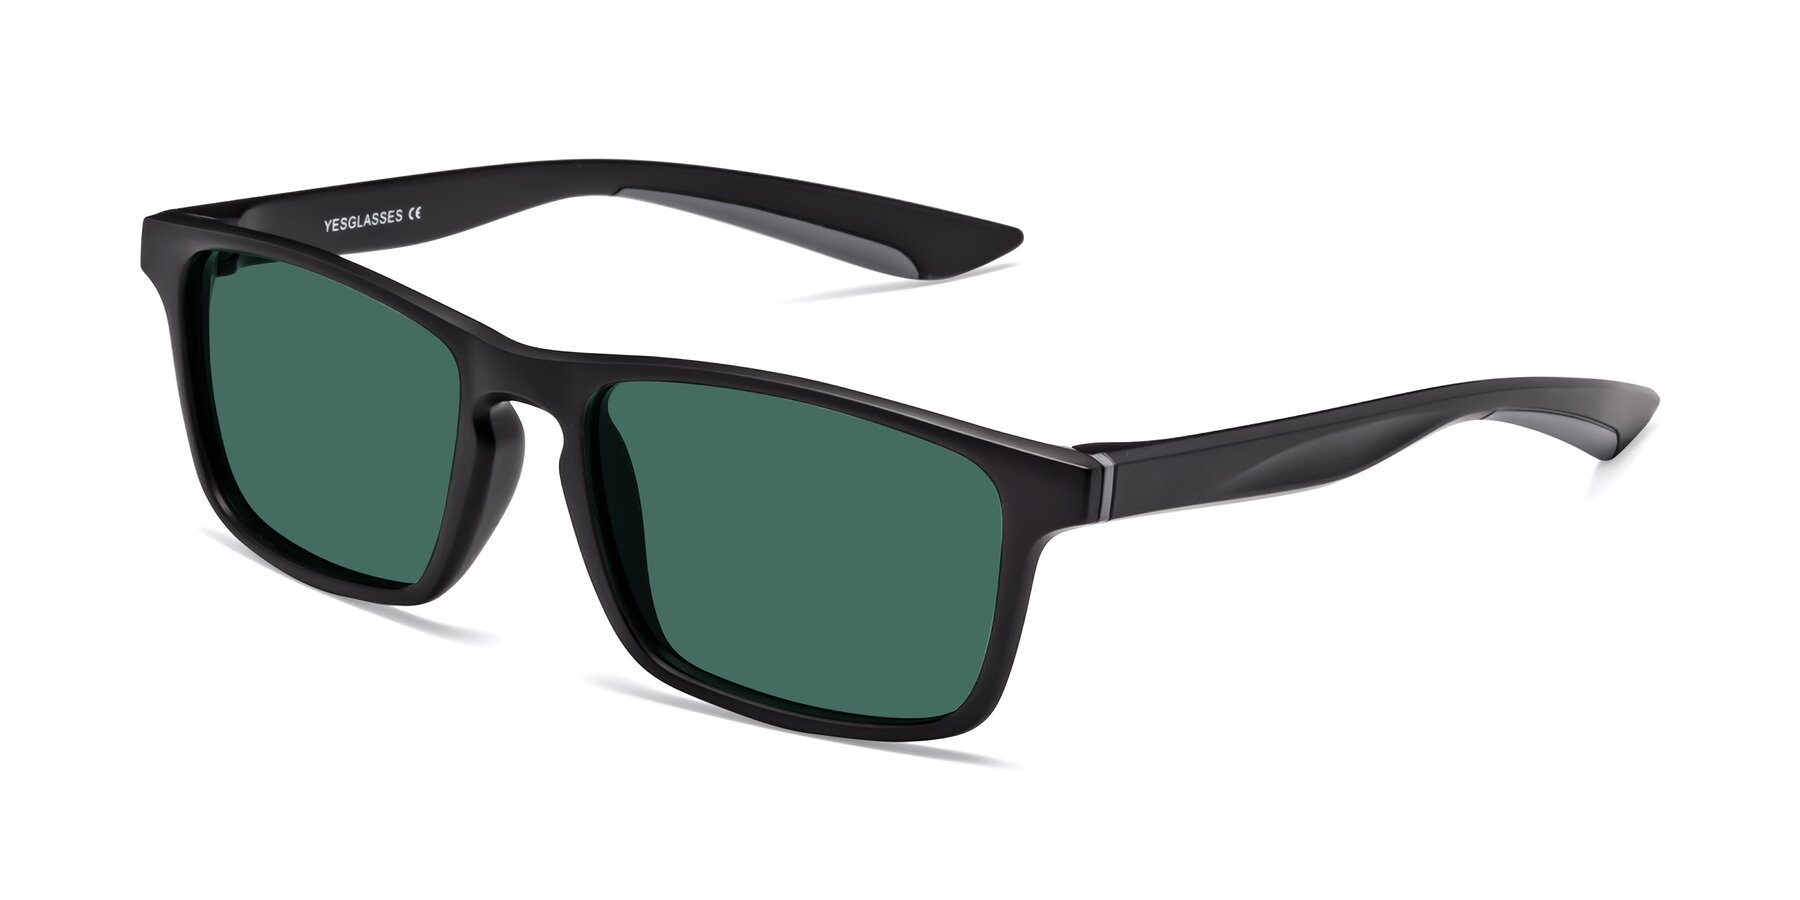 Angle of Passion in Matte Black-Gray with Green Polarized Lenses